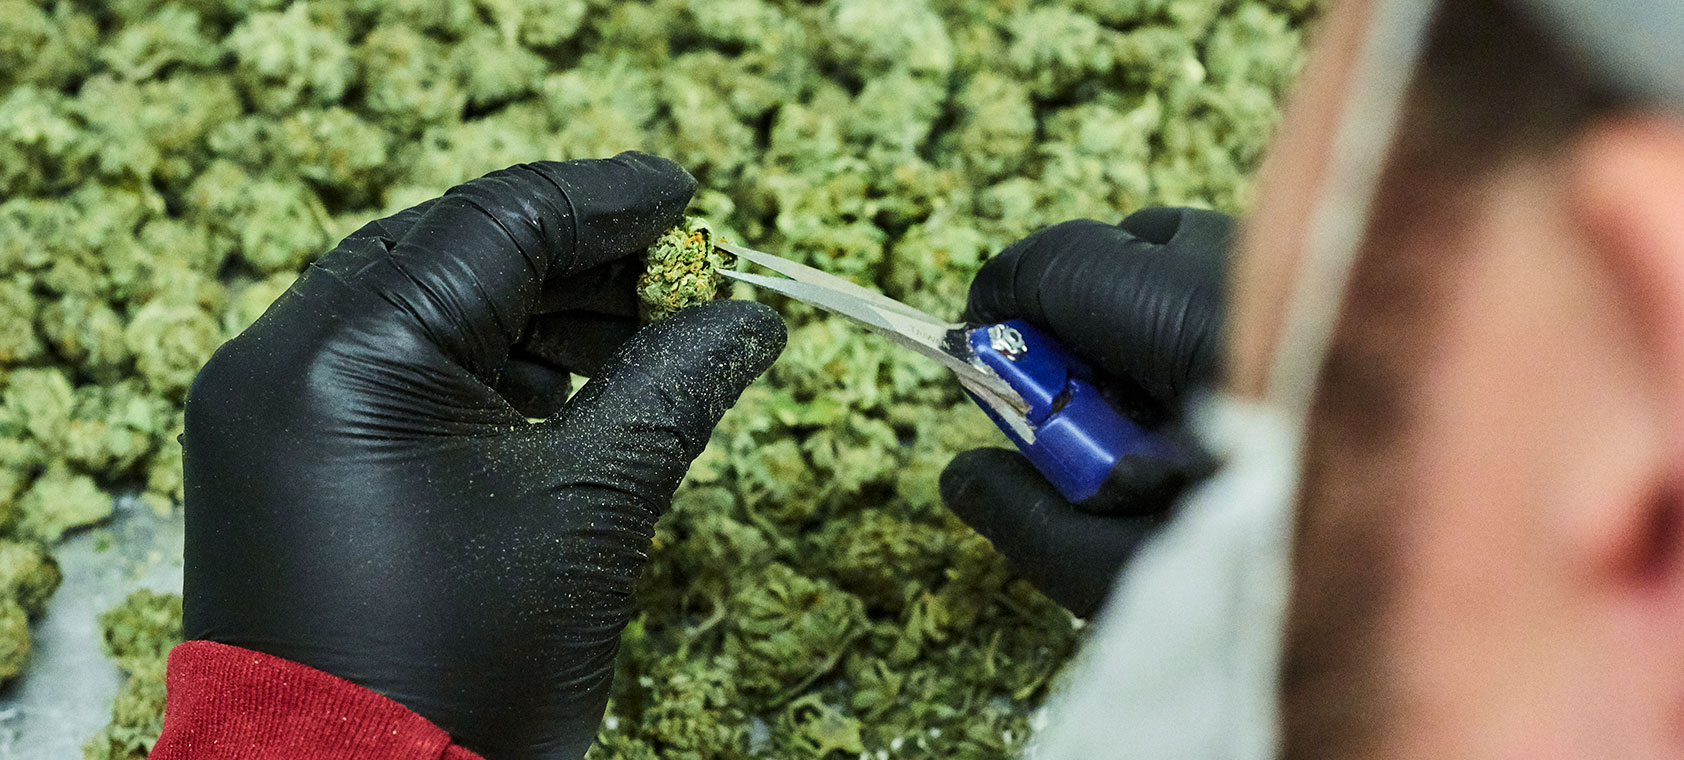 Careful hand trimming of marijuana buds at Native Roots Cannabis Co. in Denver, CO shows the time we spend and attention to detail we take with all of our products.